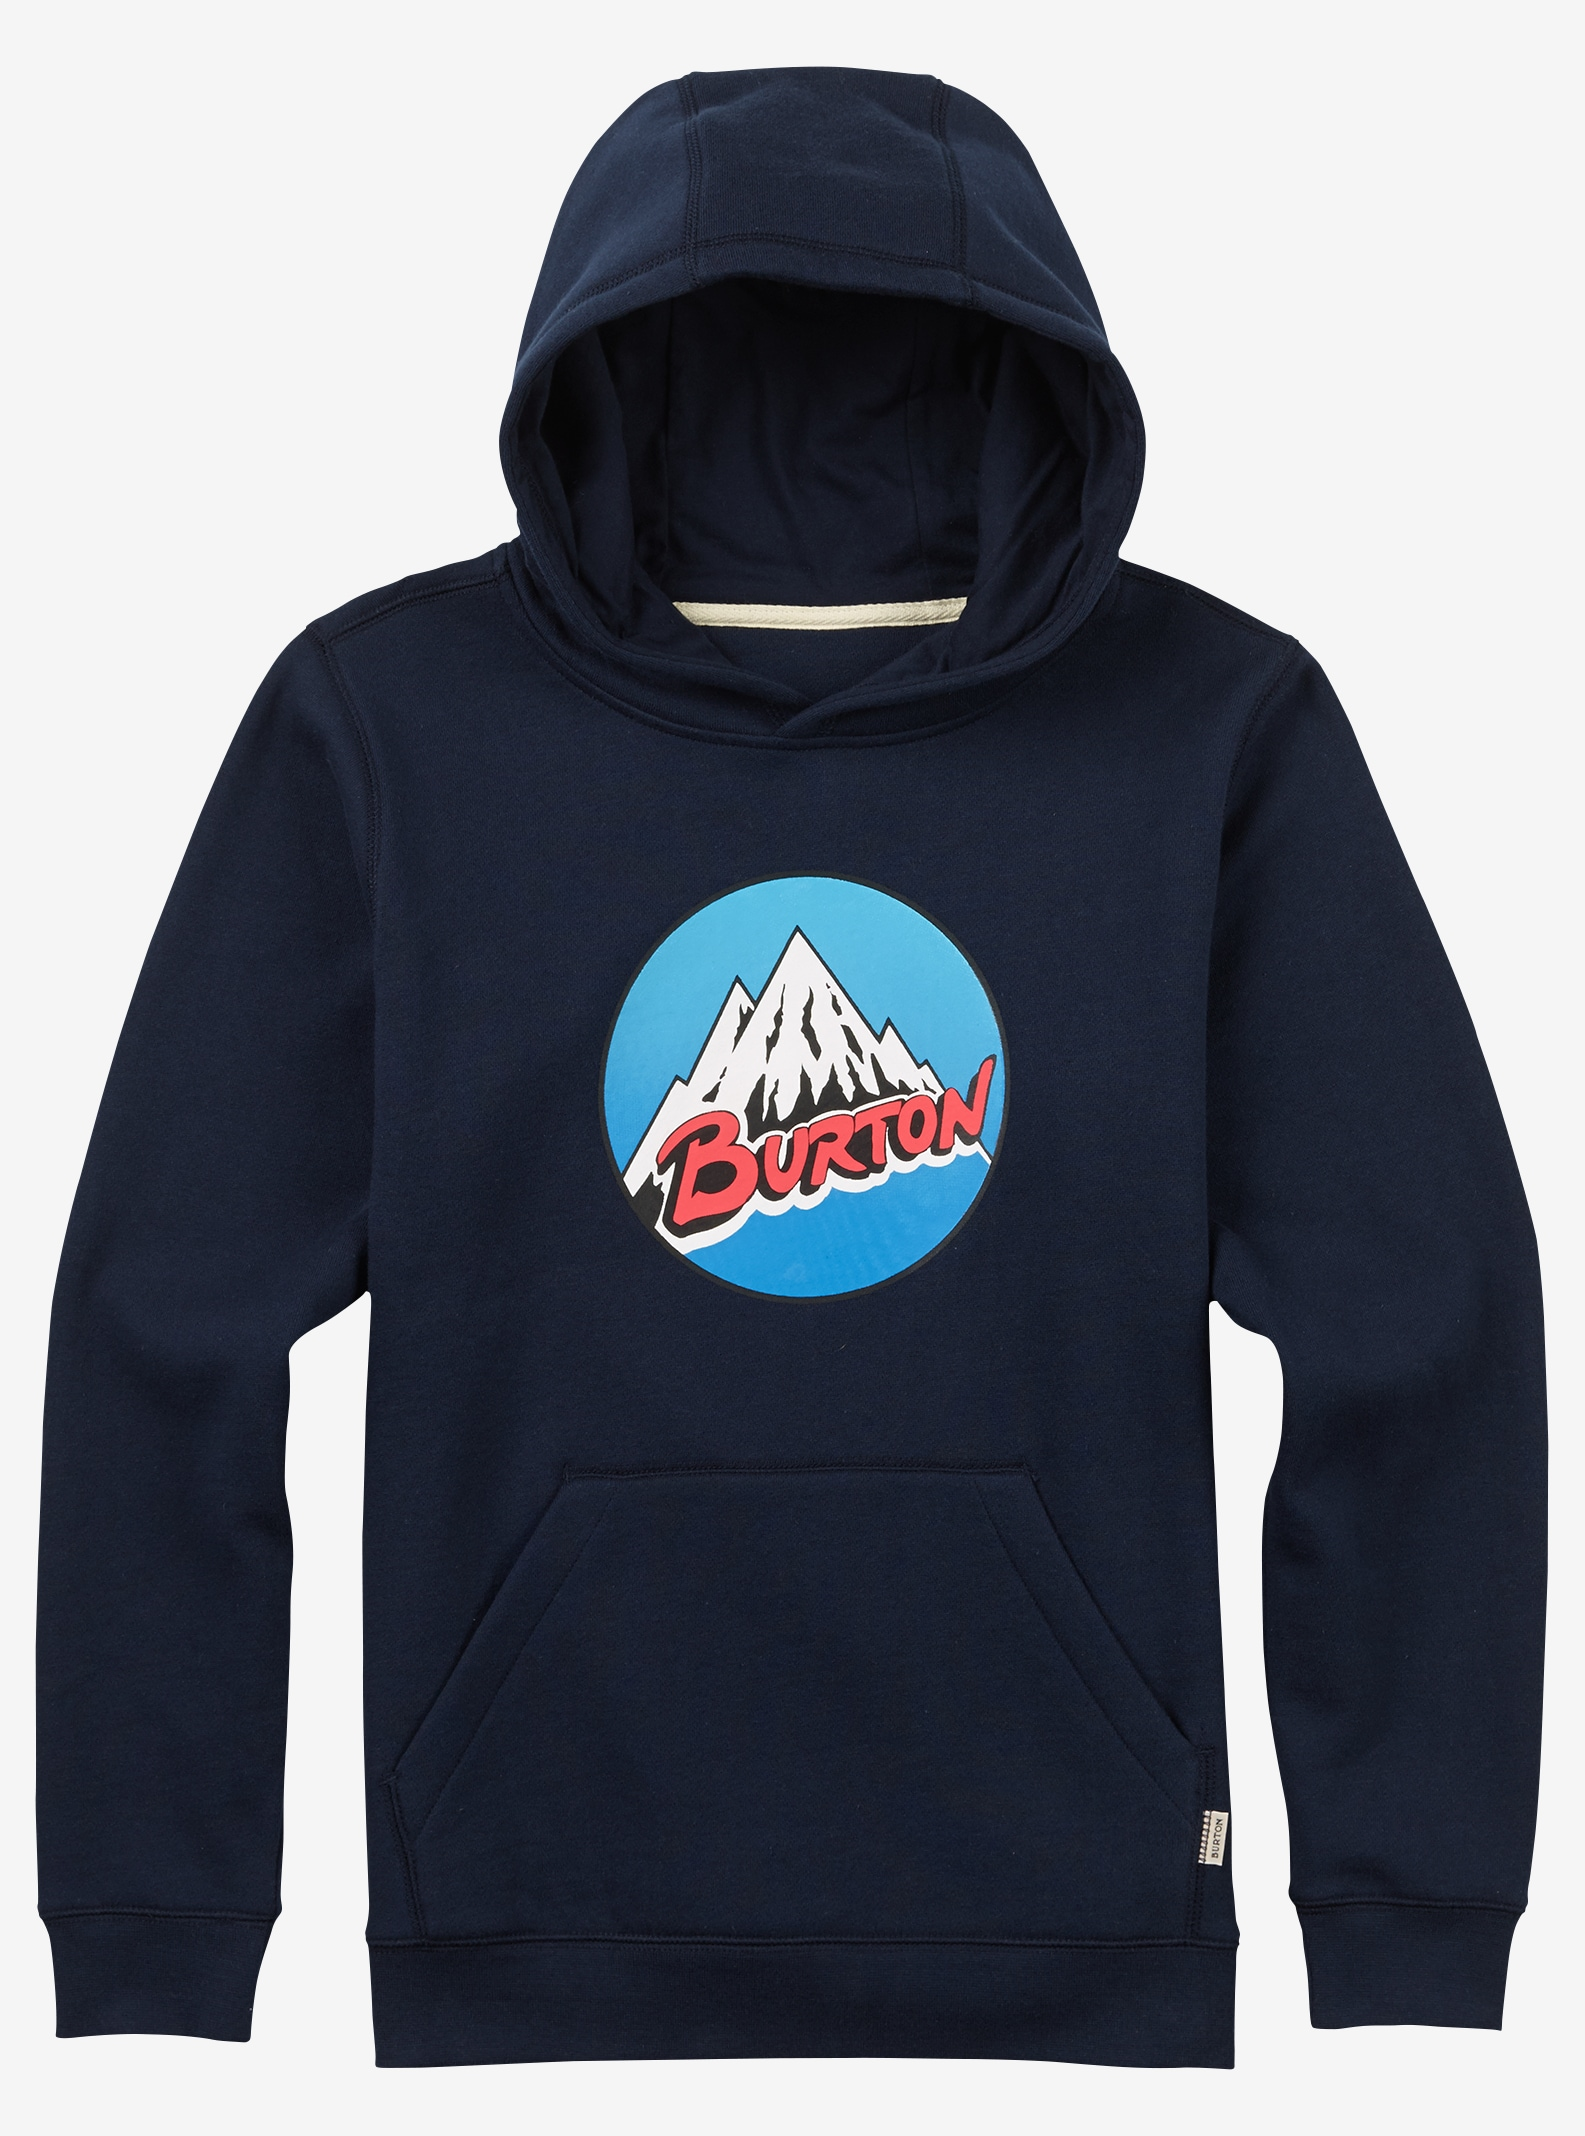 Boys' Burton Retro Mountain Pullover Hoodie shown in Indigo